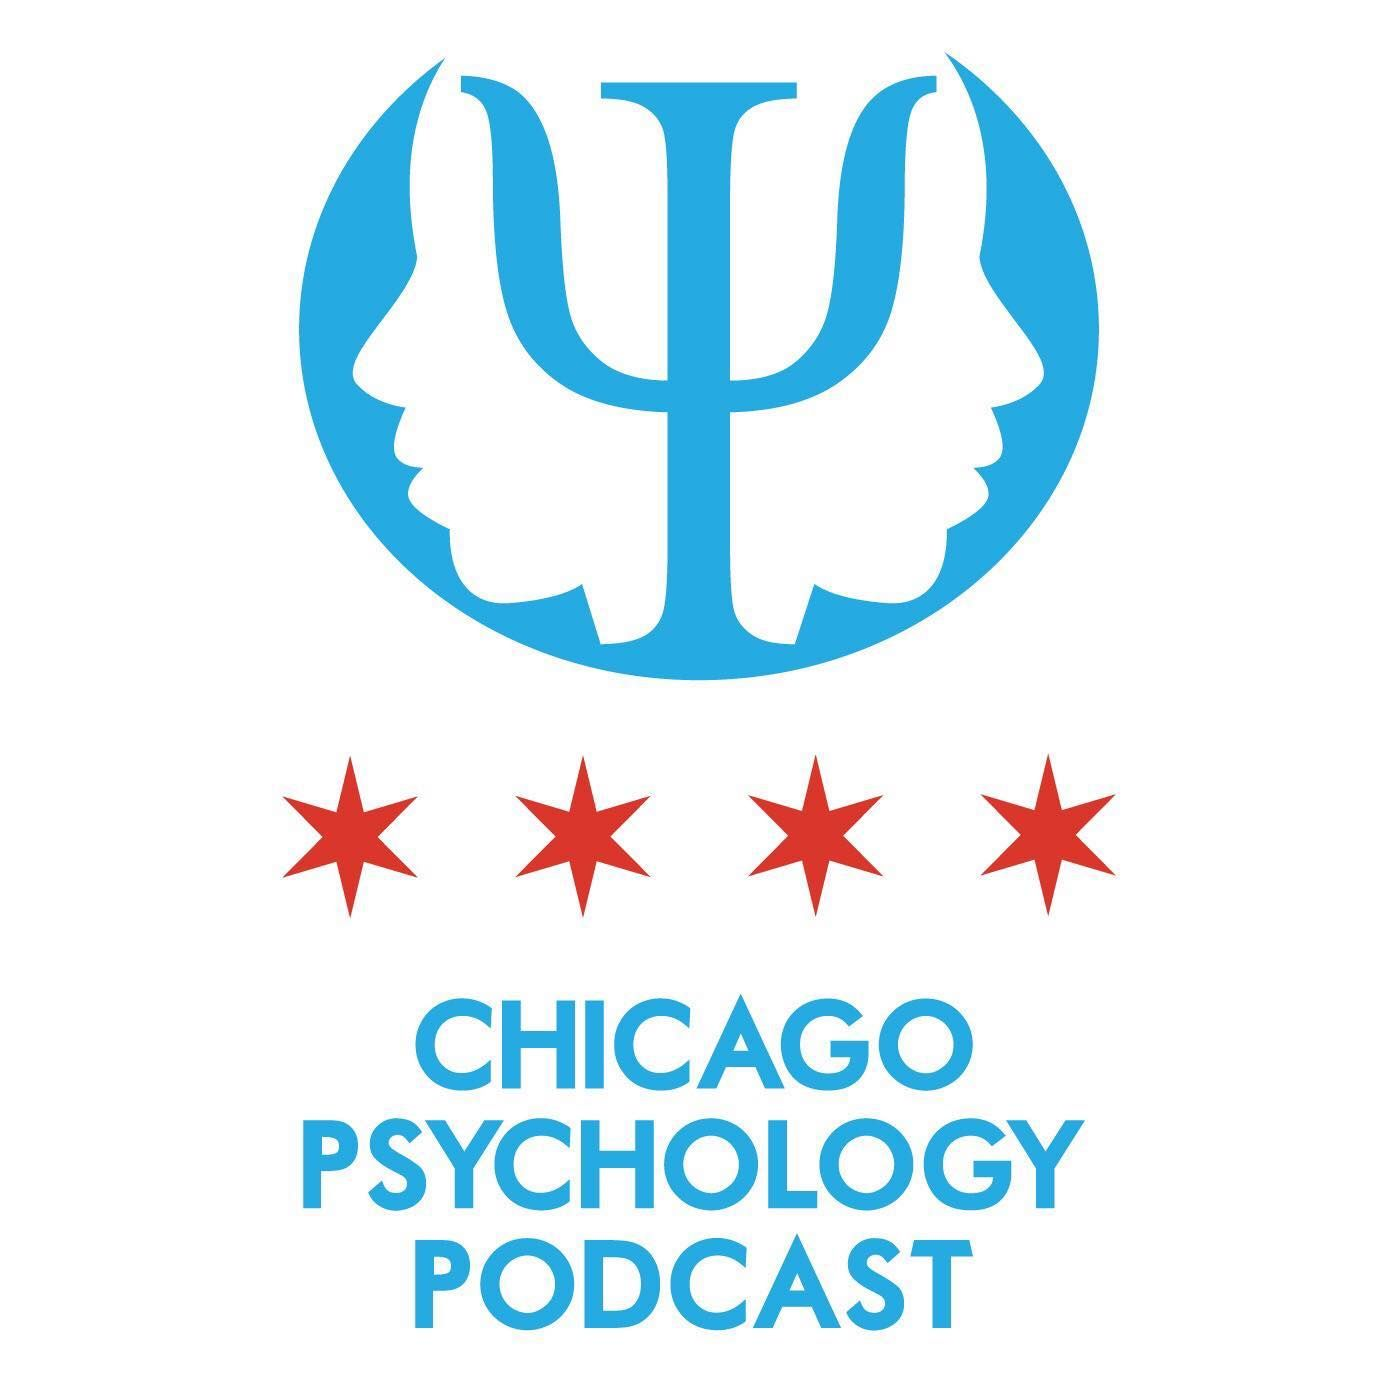 Chicago Psychology Podcast Episode 1